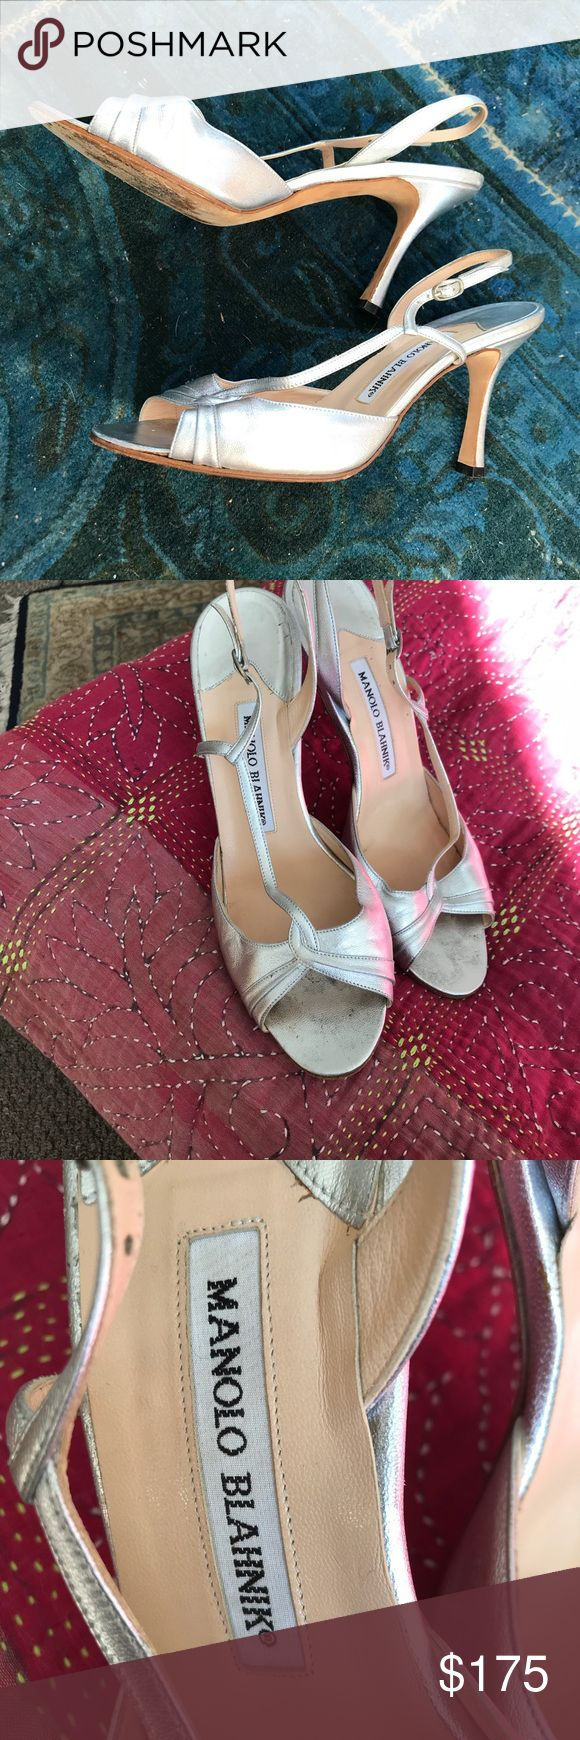 Manolo Silver Dress Sandals Bought these at Bergdorf G's in NYC for a wedding I went to there. Worn once they are like new. Very feminine and dainty. Every girl needs one pair of Manolo B's and a Silver Sandals for parties. ❤️ Manolo Blahnik Shoes Heels